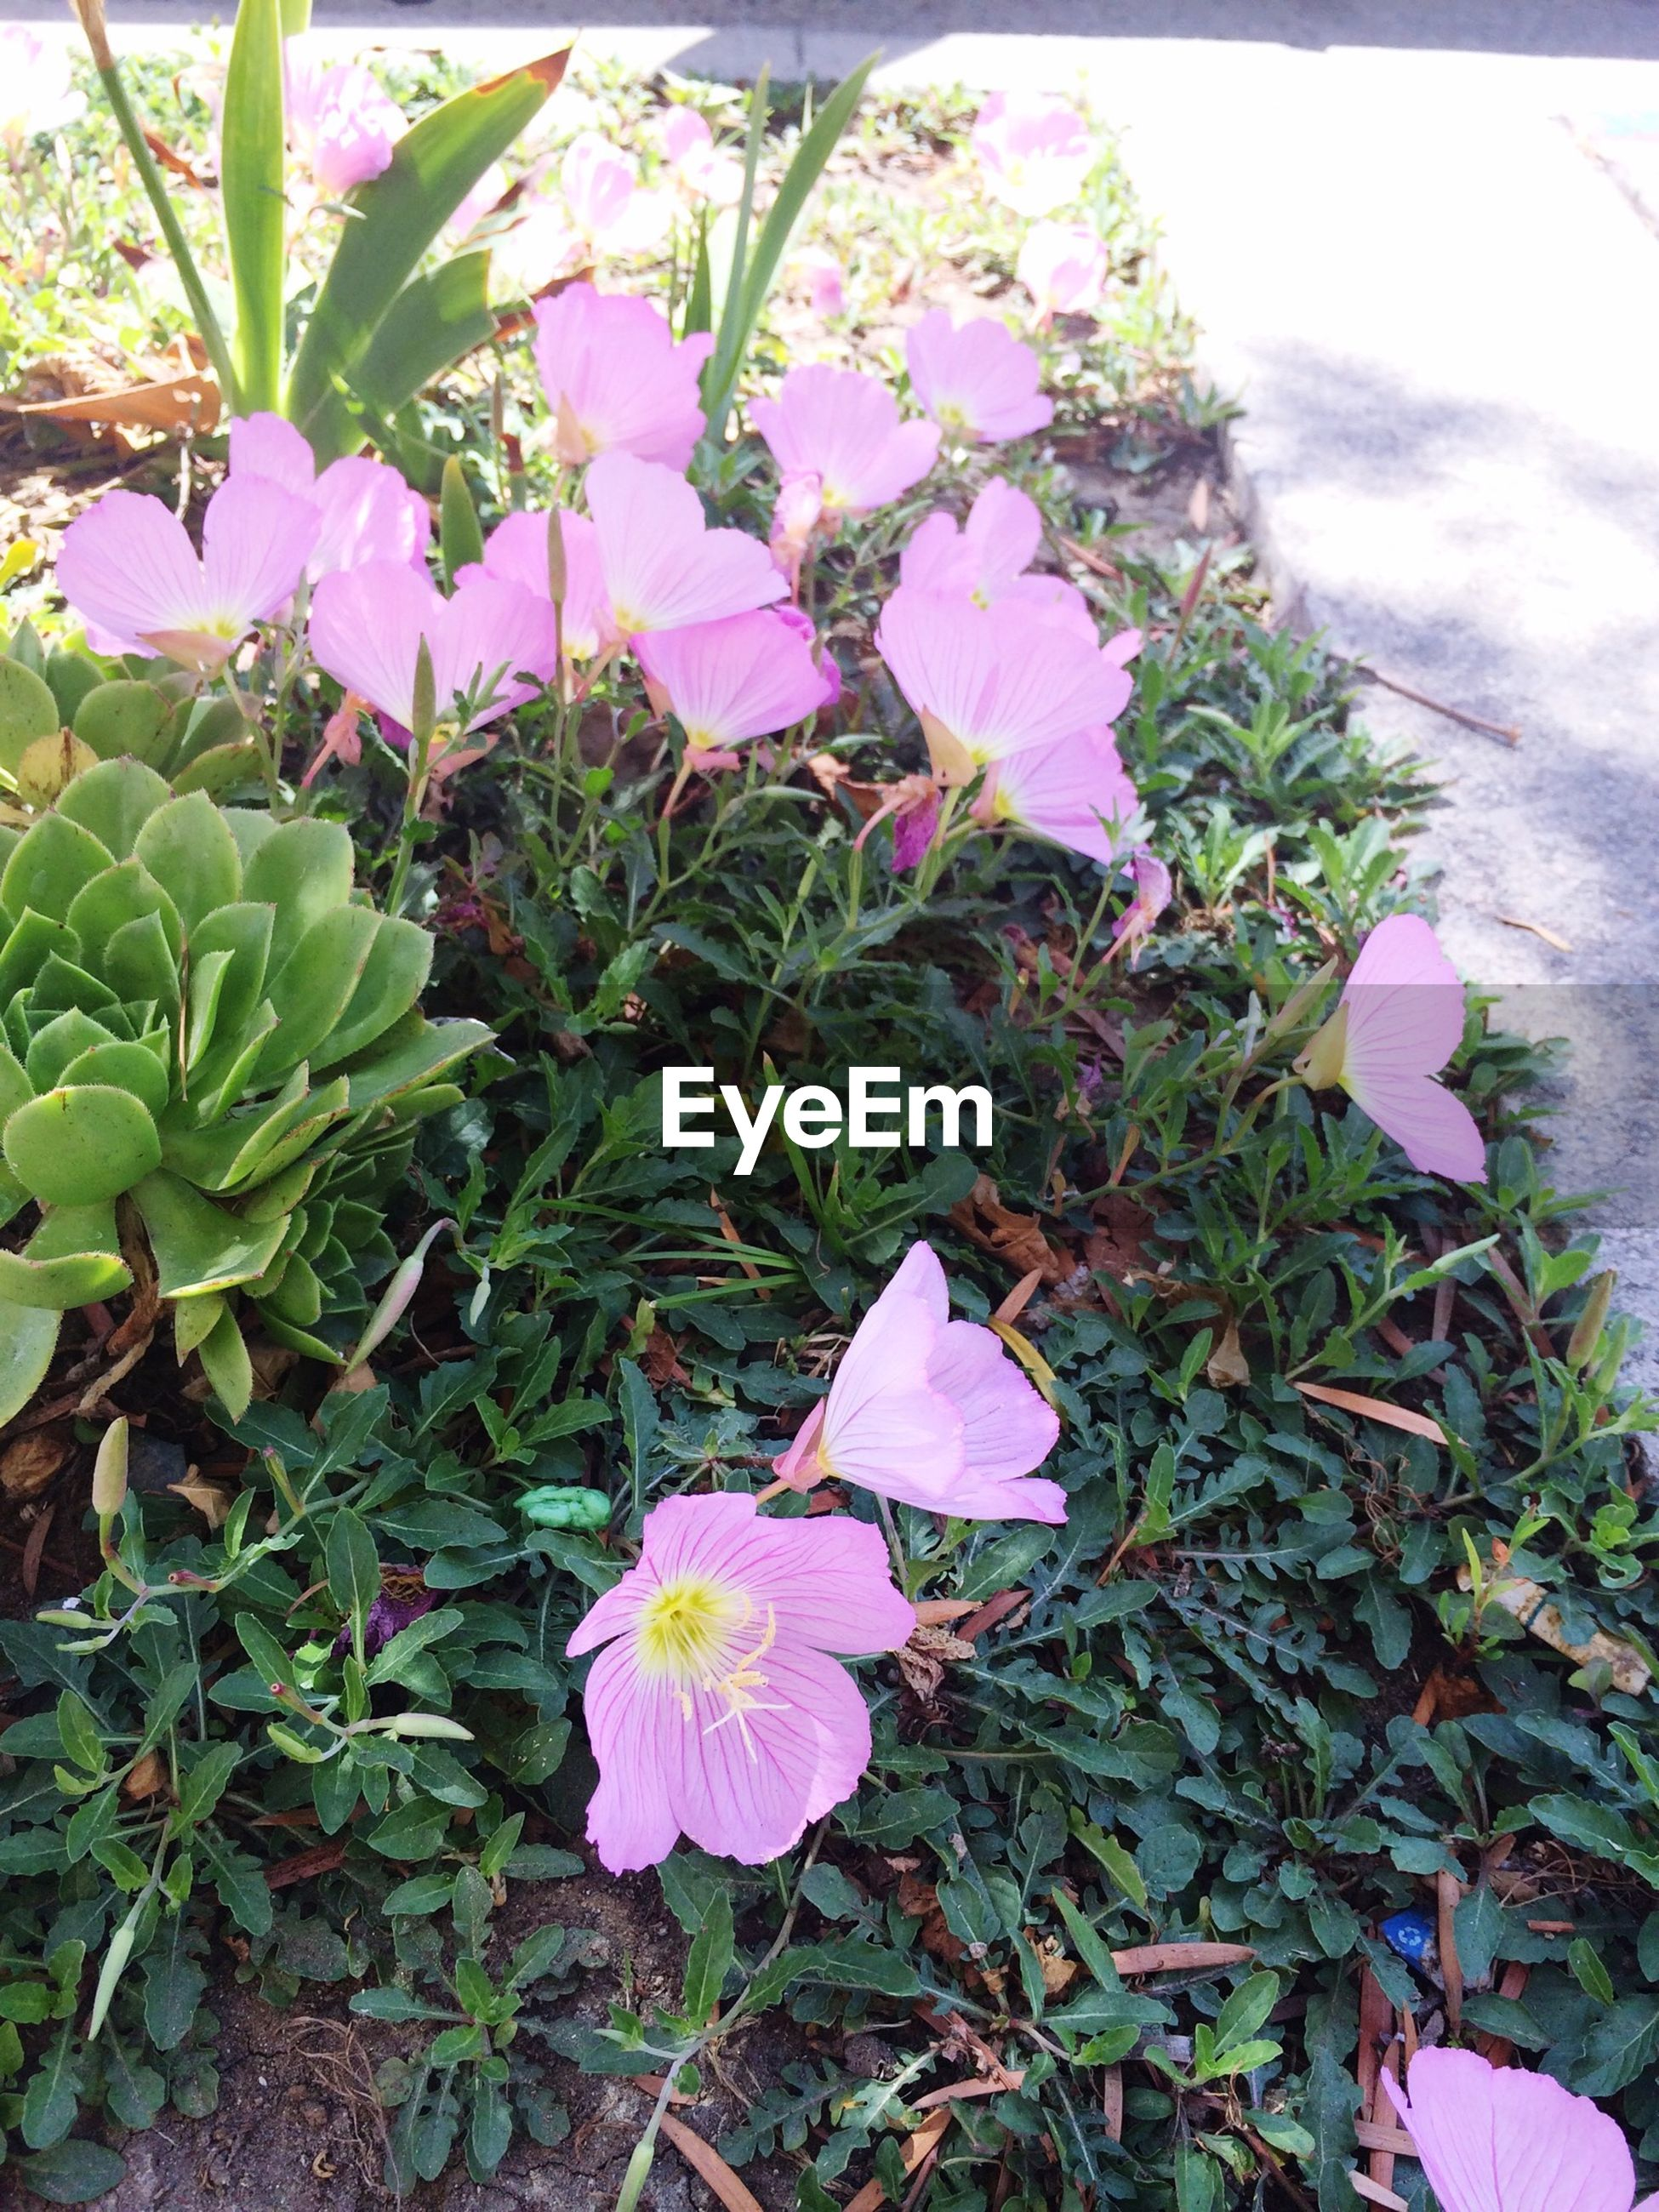 growth, plant, flower, nature, pink color, petal, leaf, day, high angle view, fragility, outdoors, no people, beauty in nature, freshness, blooming, purple, green color, flower head, close-up, petunia, periwinkle